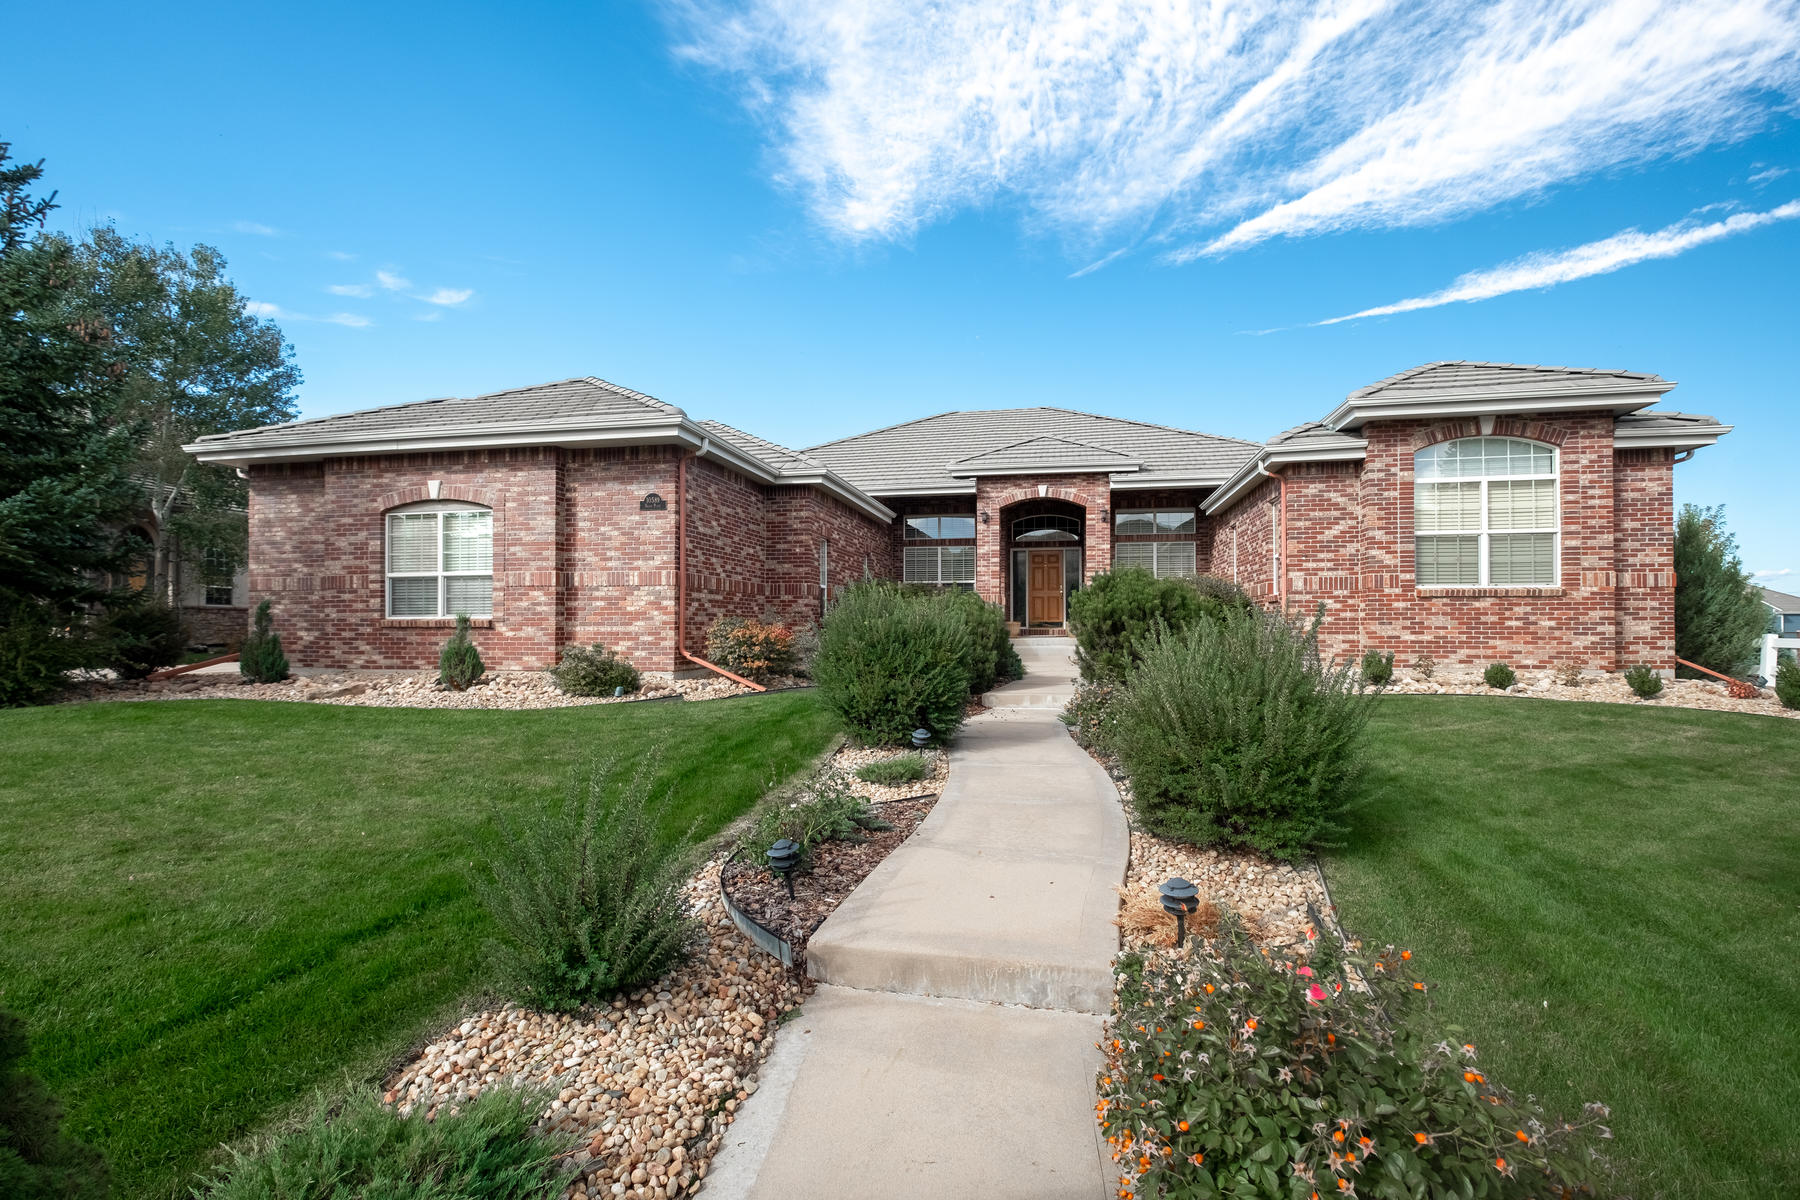 Single Family Homes のために 売買 アット Rare opportunity in Carriage Club -walk-out ranch with over 2,900 finishes Sq Ft 10589 Dacre Place Lone Tree, コロラド 80124 アメリカ